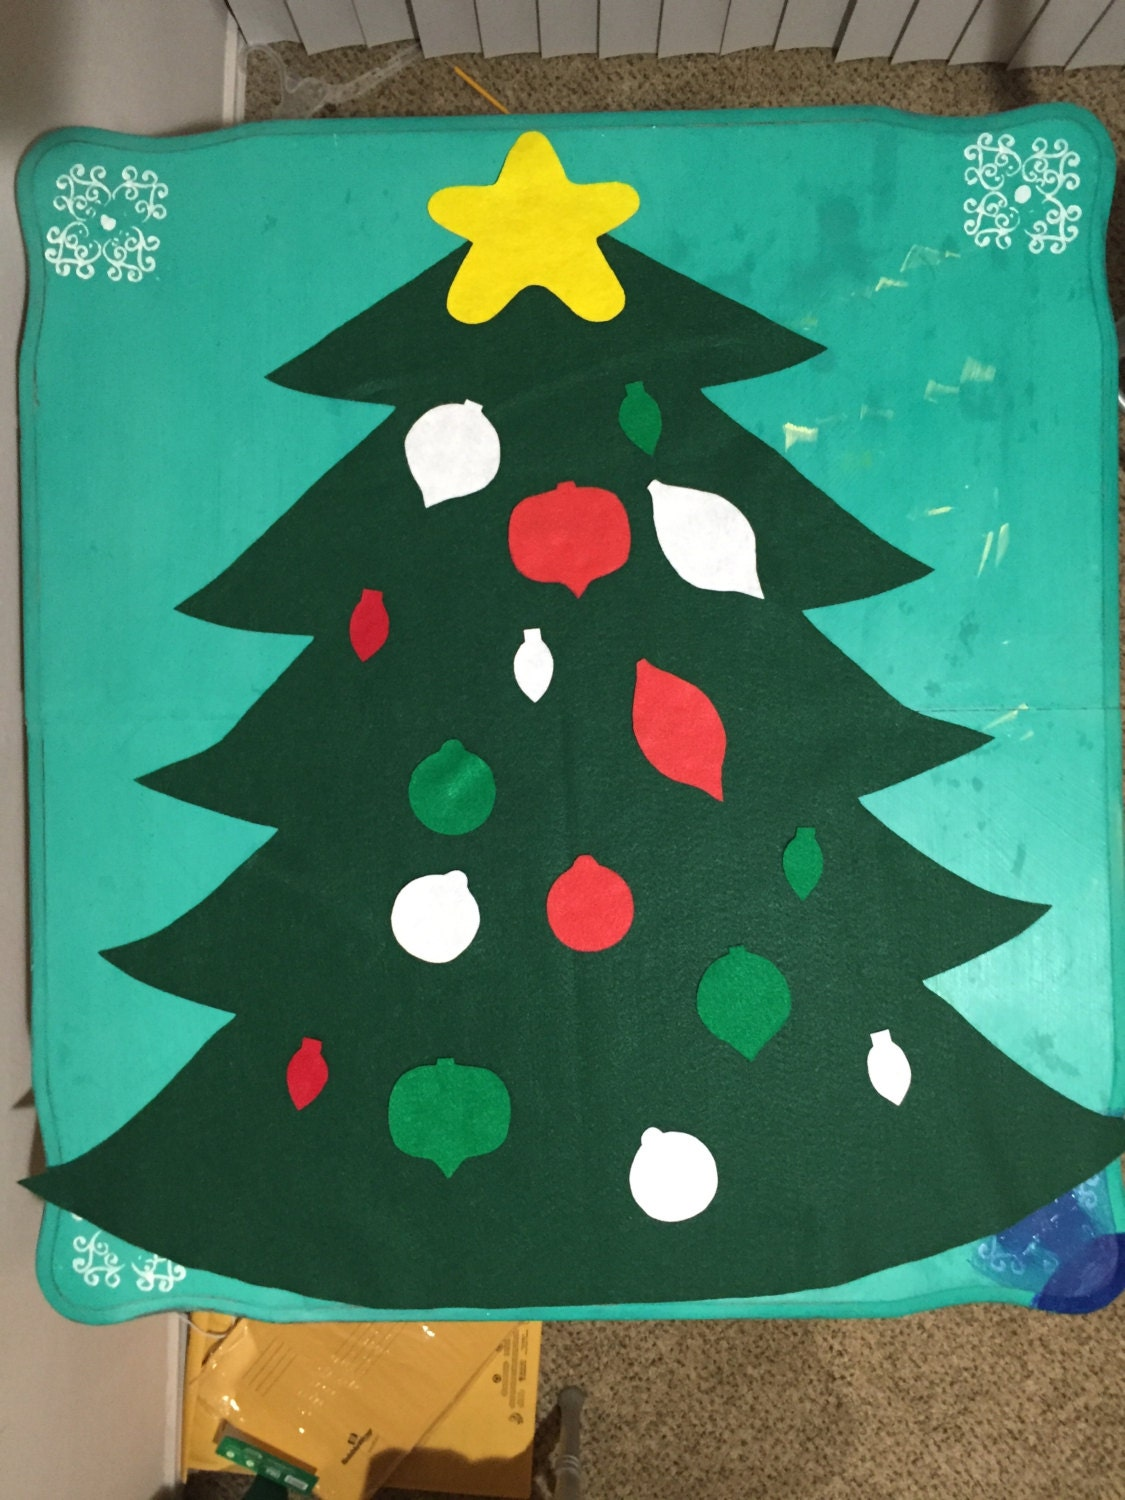 wall felt christmas tree for kids by kristasfuncrafts on etsy. Black Bedroom Furniture Sets. Home Design Ideas